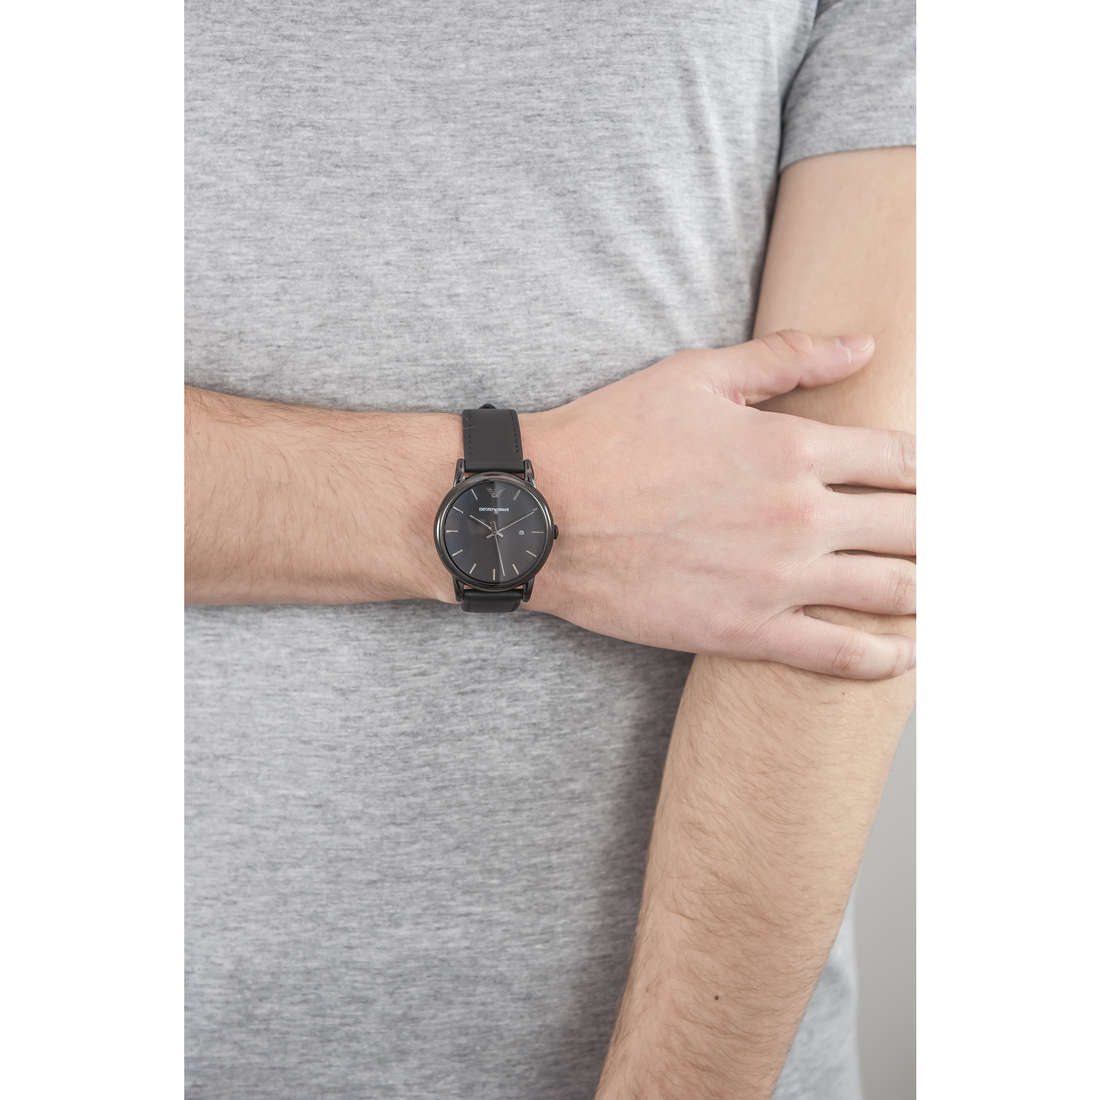 Emporio Armani only time man AR1732 indosso